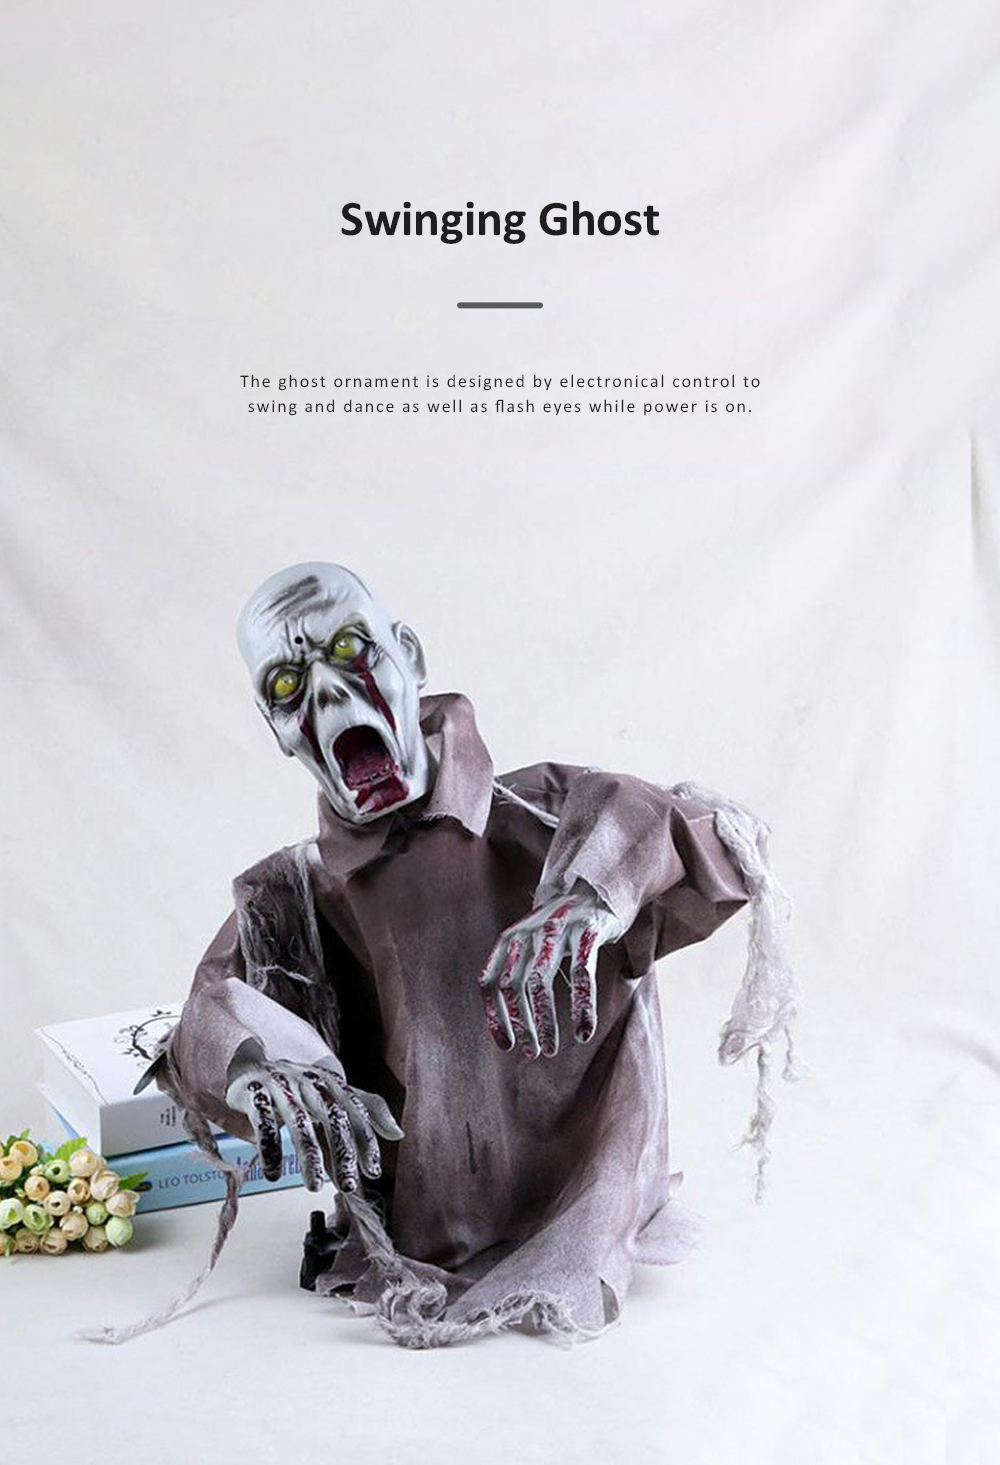 New Style Swinging Ghost Ornament for Room Escape Decoration Large Size Zombie Toy Electronic Horrible Standing Dancing Ghost Zombie Props 4